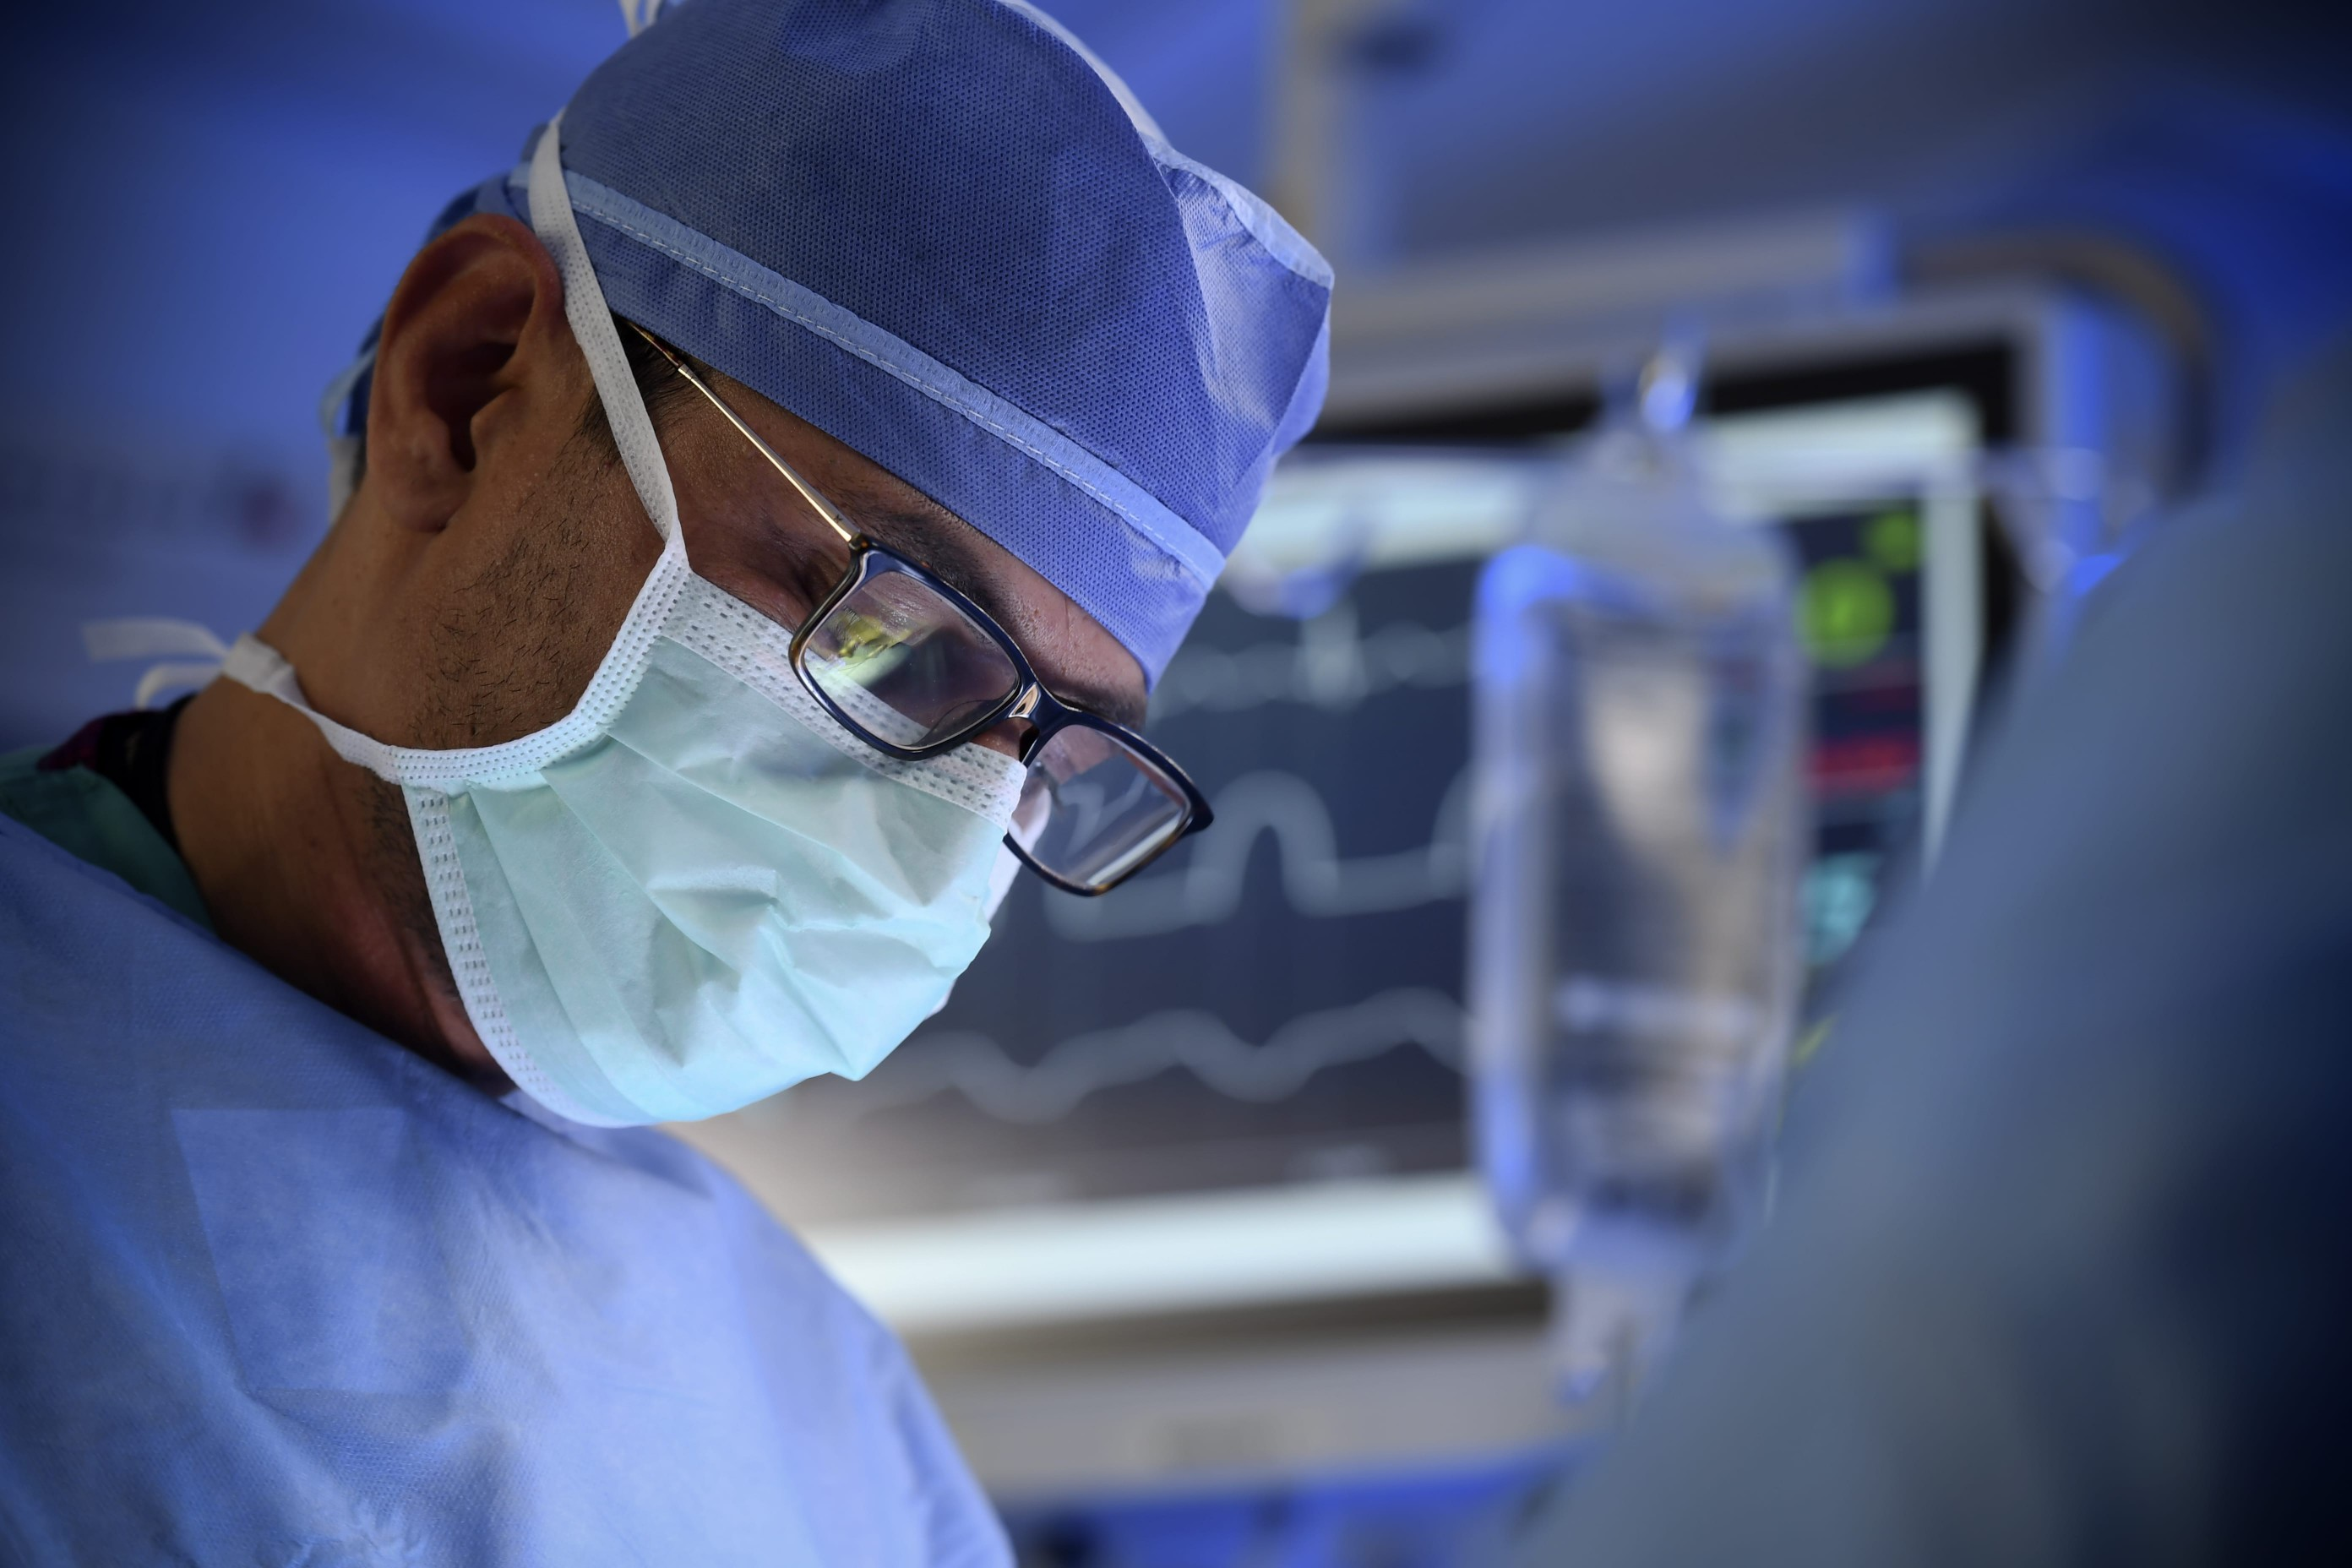 A surgical oncologist in operating attire performs a clinical trial procedure to treat a lung cancer patient